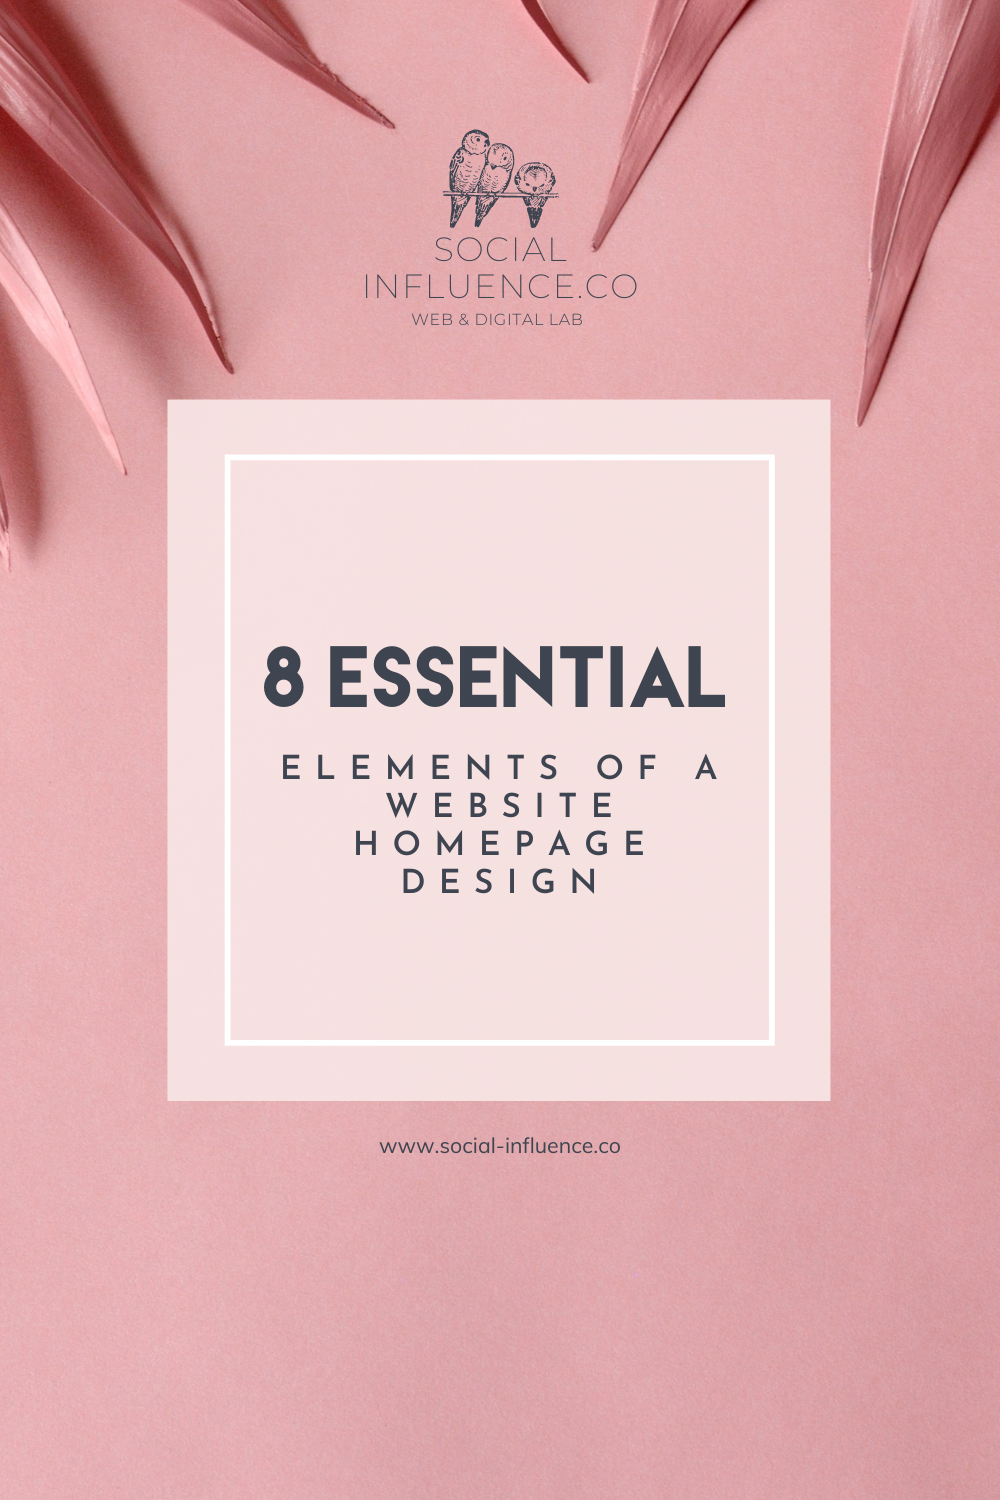 8 ESSENTIAL ELEMENTS OF A WEBSITE HOMEPAGE DESIGN